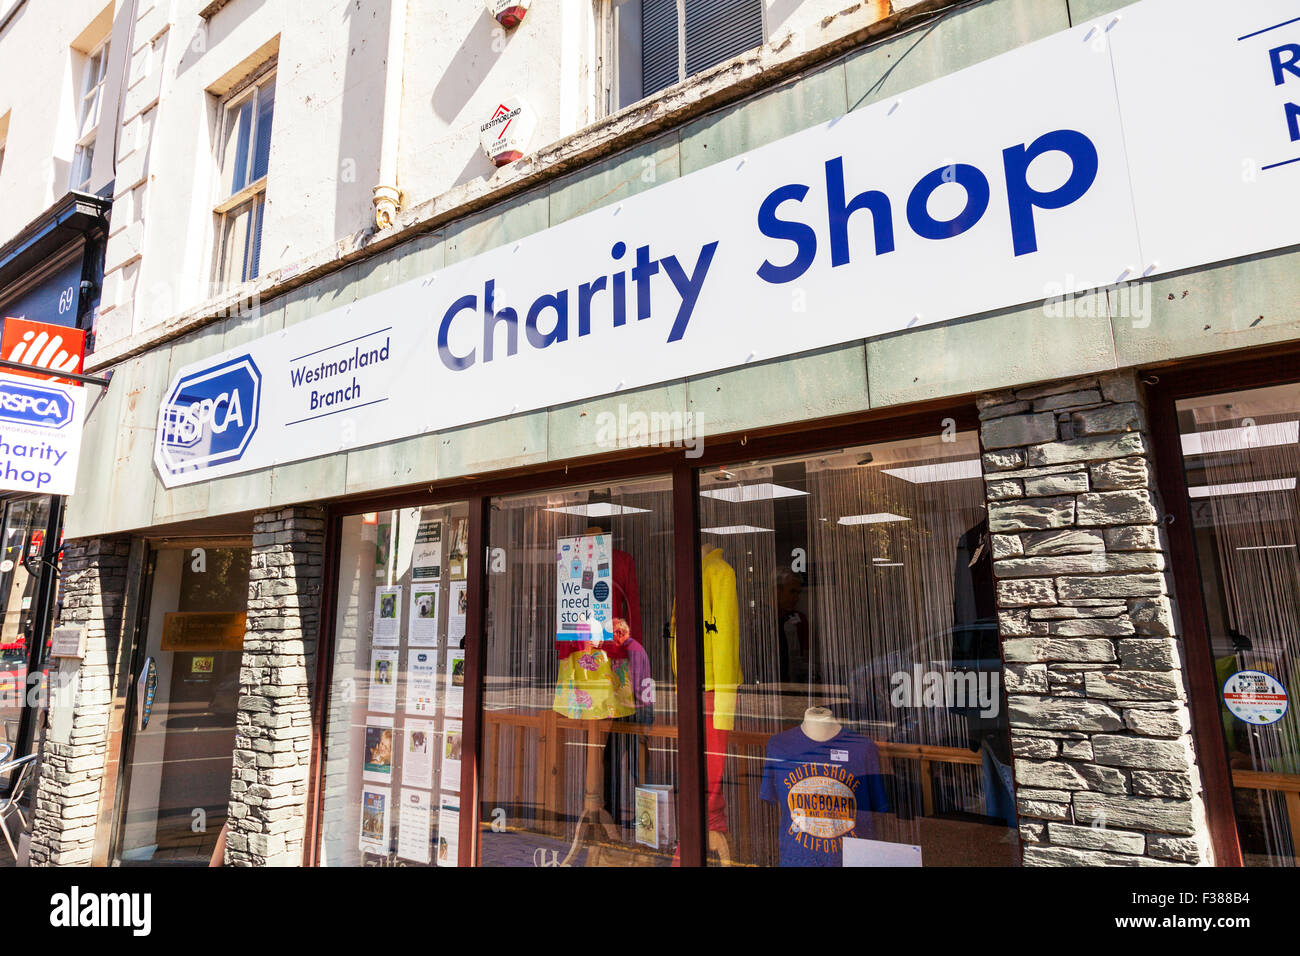 RSPCA Charity shop store sign exterior front facade high street shopping Kendal Cumbria UK England - Stock Image